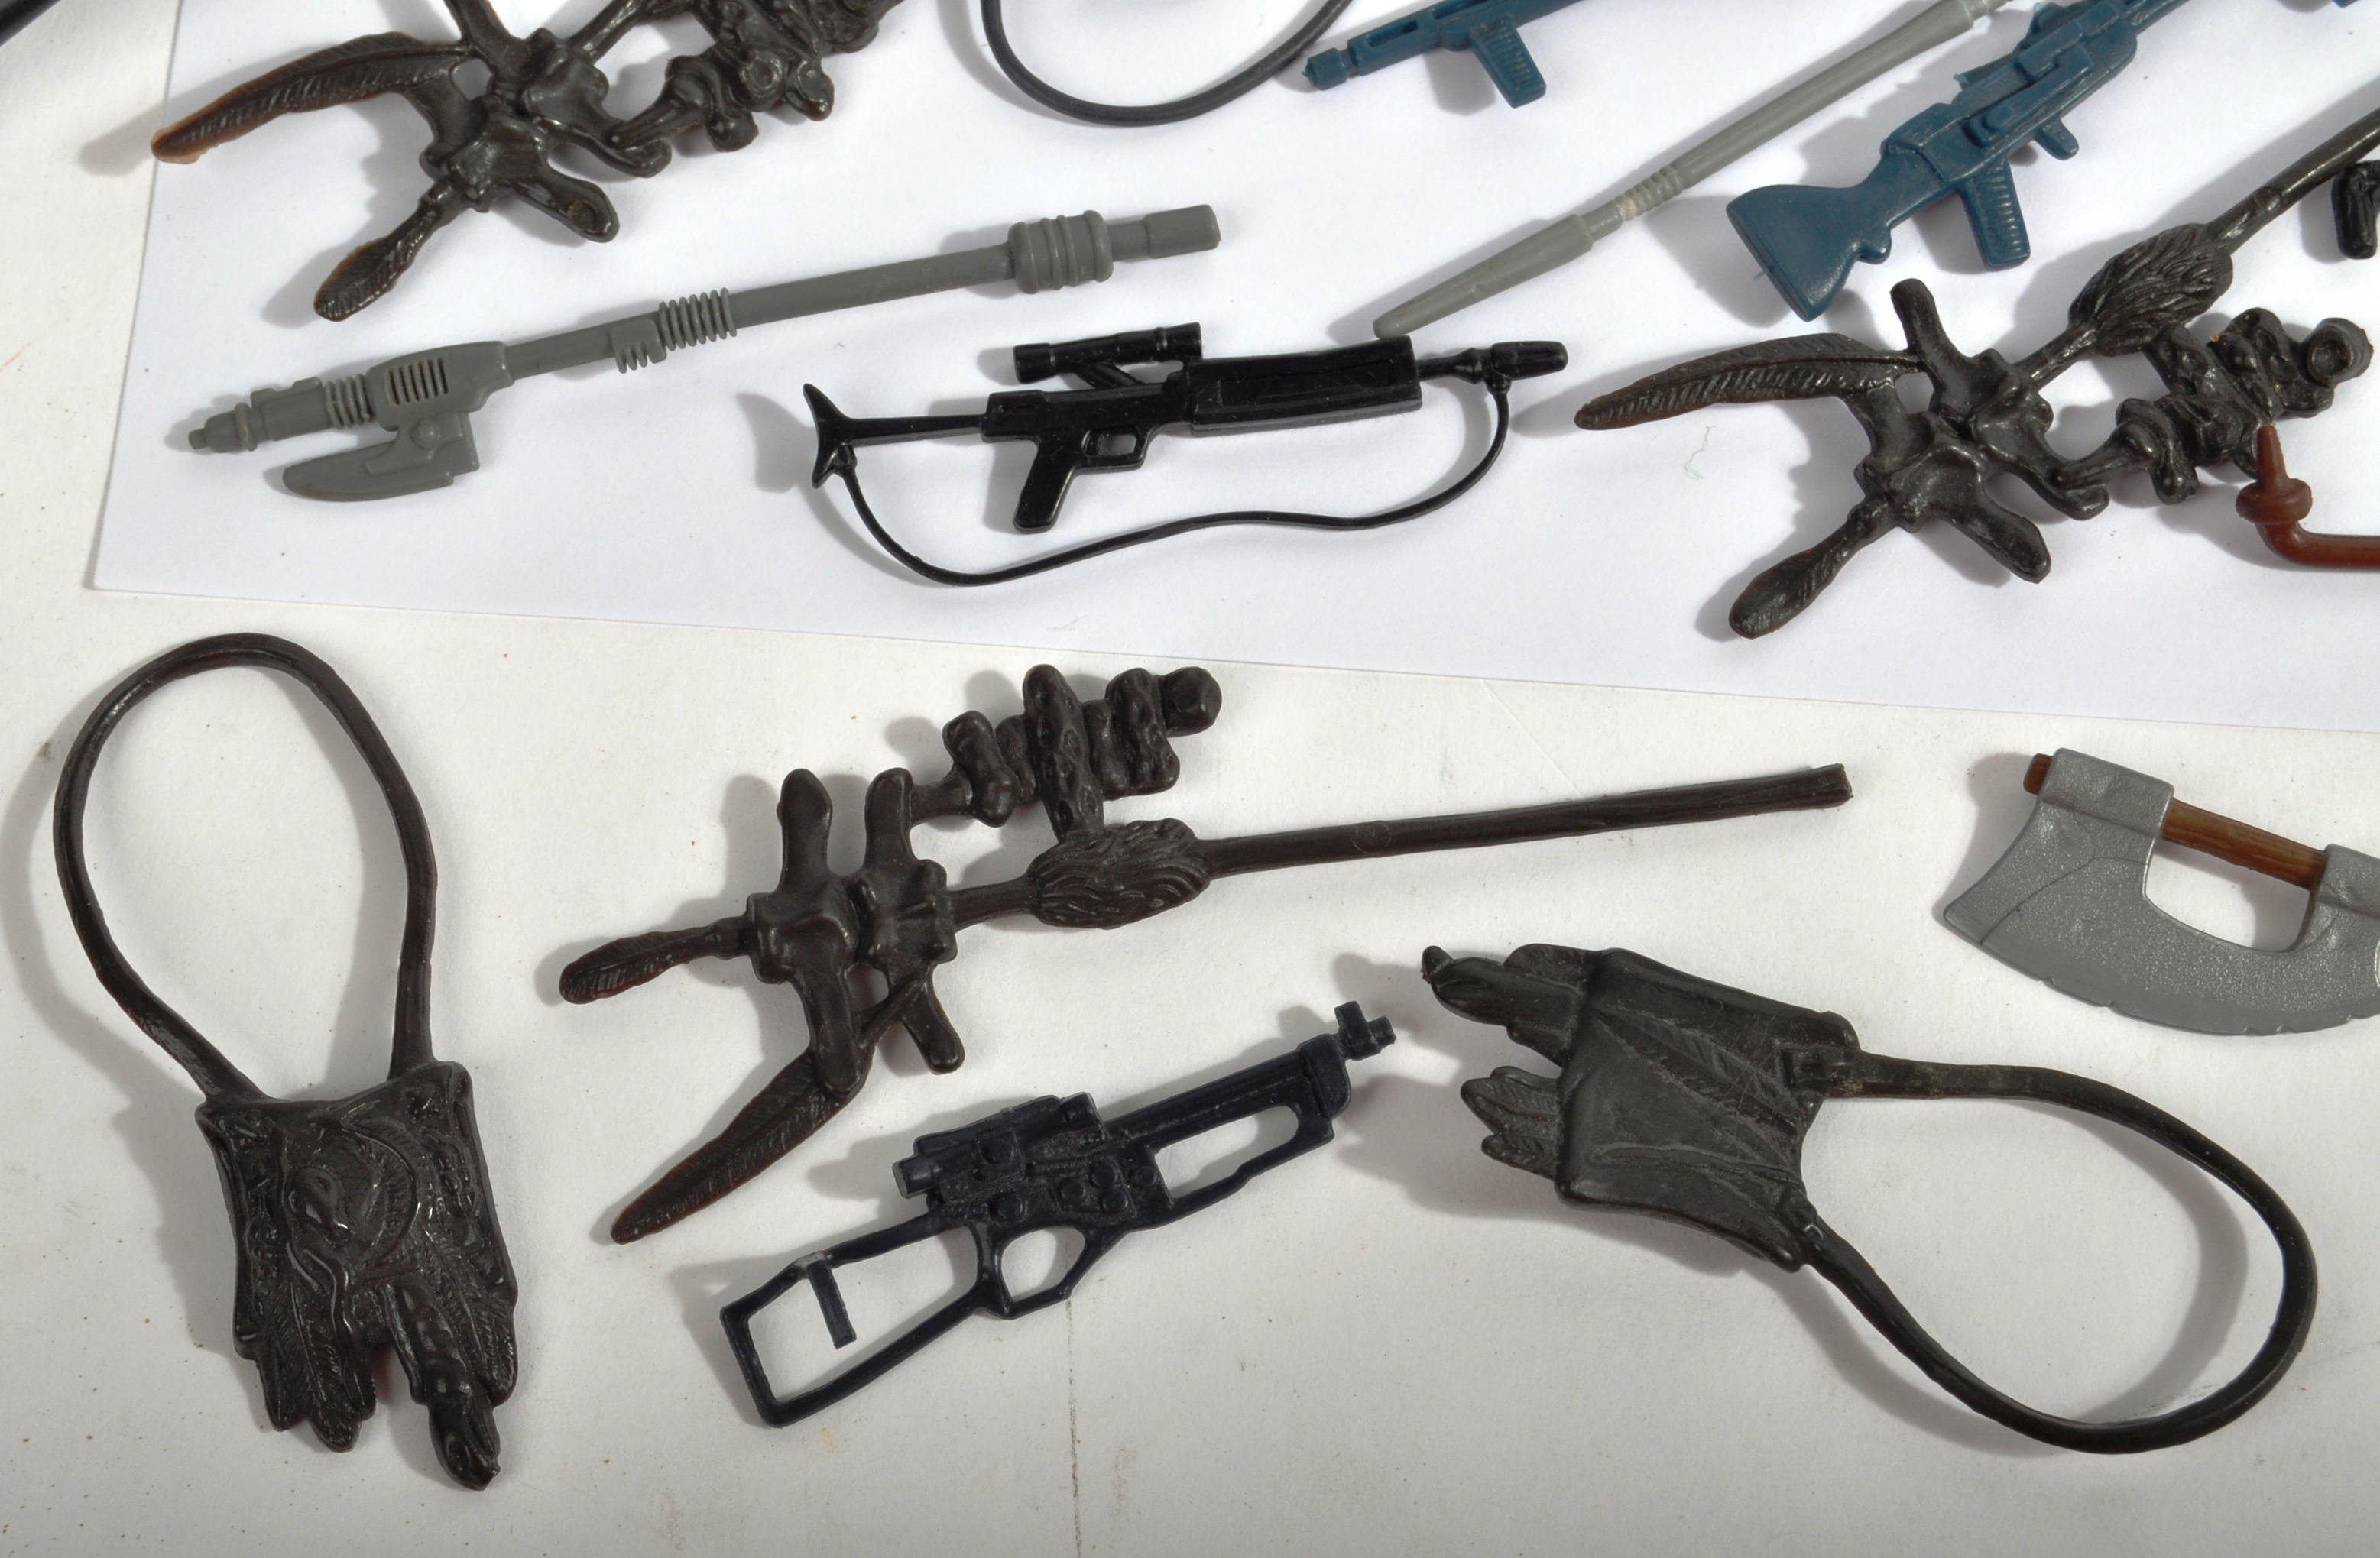 STAR WARS - LARGE COLLECTION OF ORIGINAL VINTAGE WEAPONS & ACCESSORIES. - Image 7 of 11